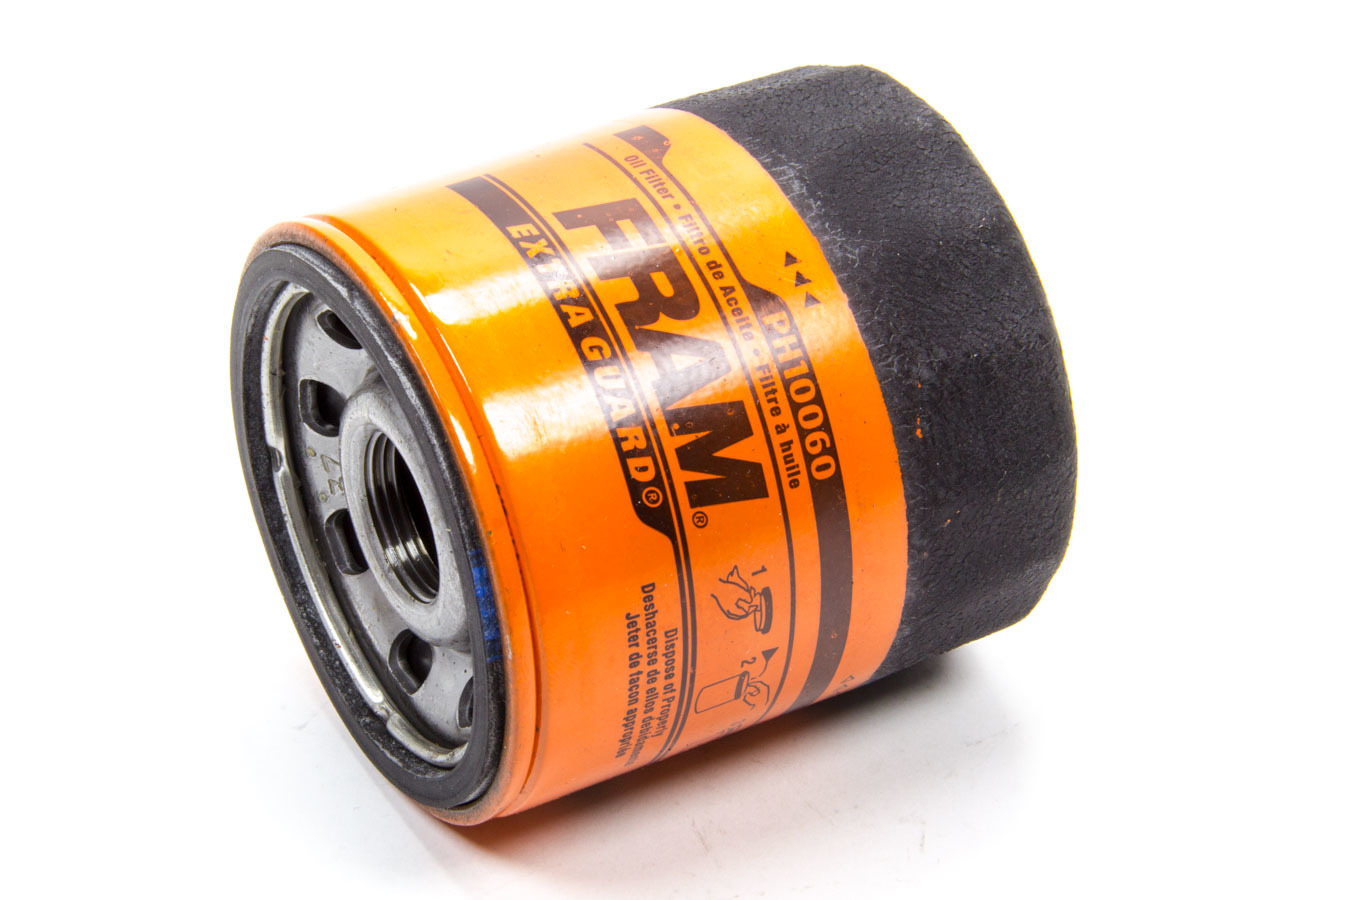 Fram PH10060 Oil Filter, Extra Guard, Canister, Screw-On, 3-1/3 in Tall, 22 mm x 1.50 Thread, Steel, Orange, Various Applications, Each